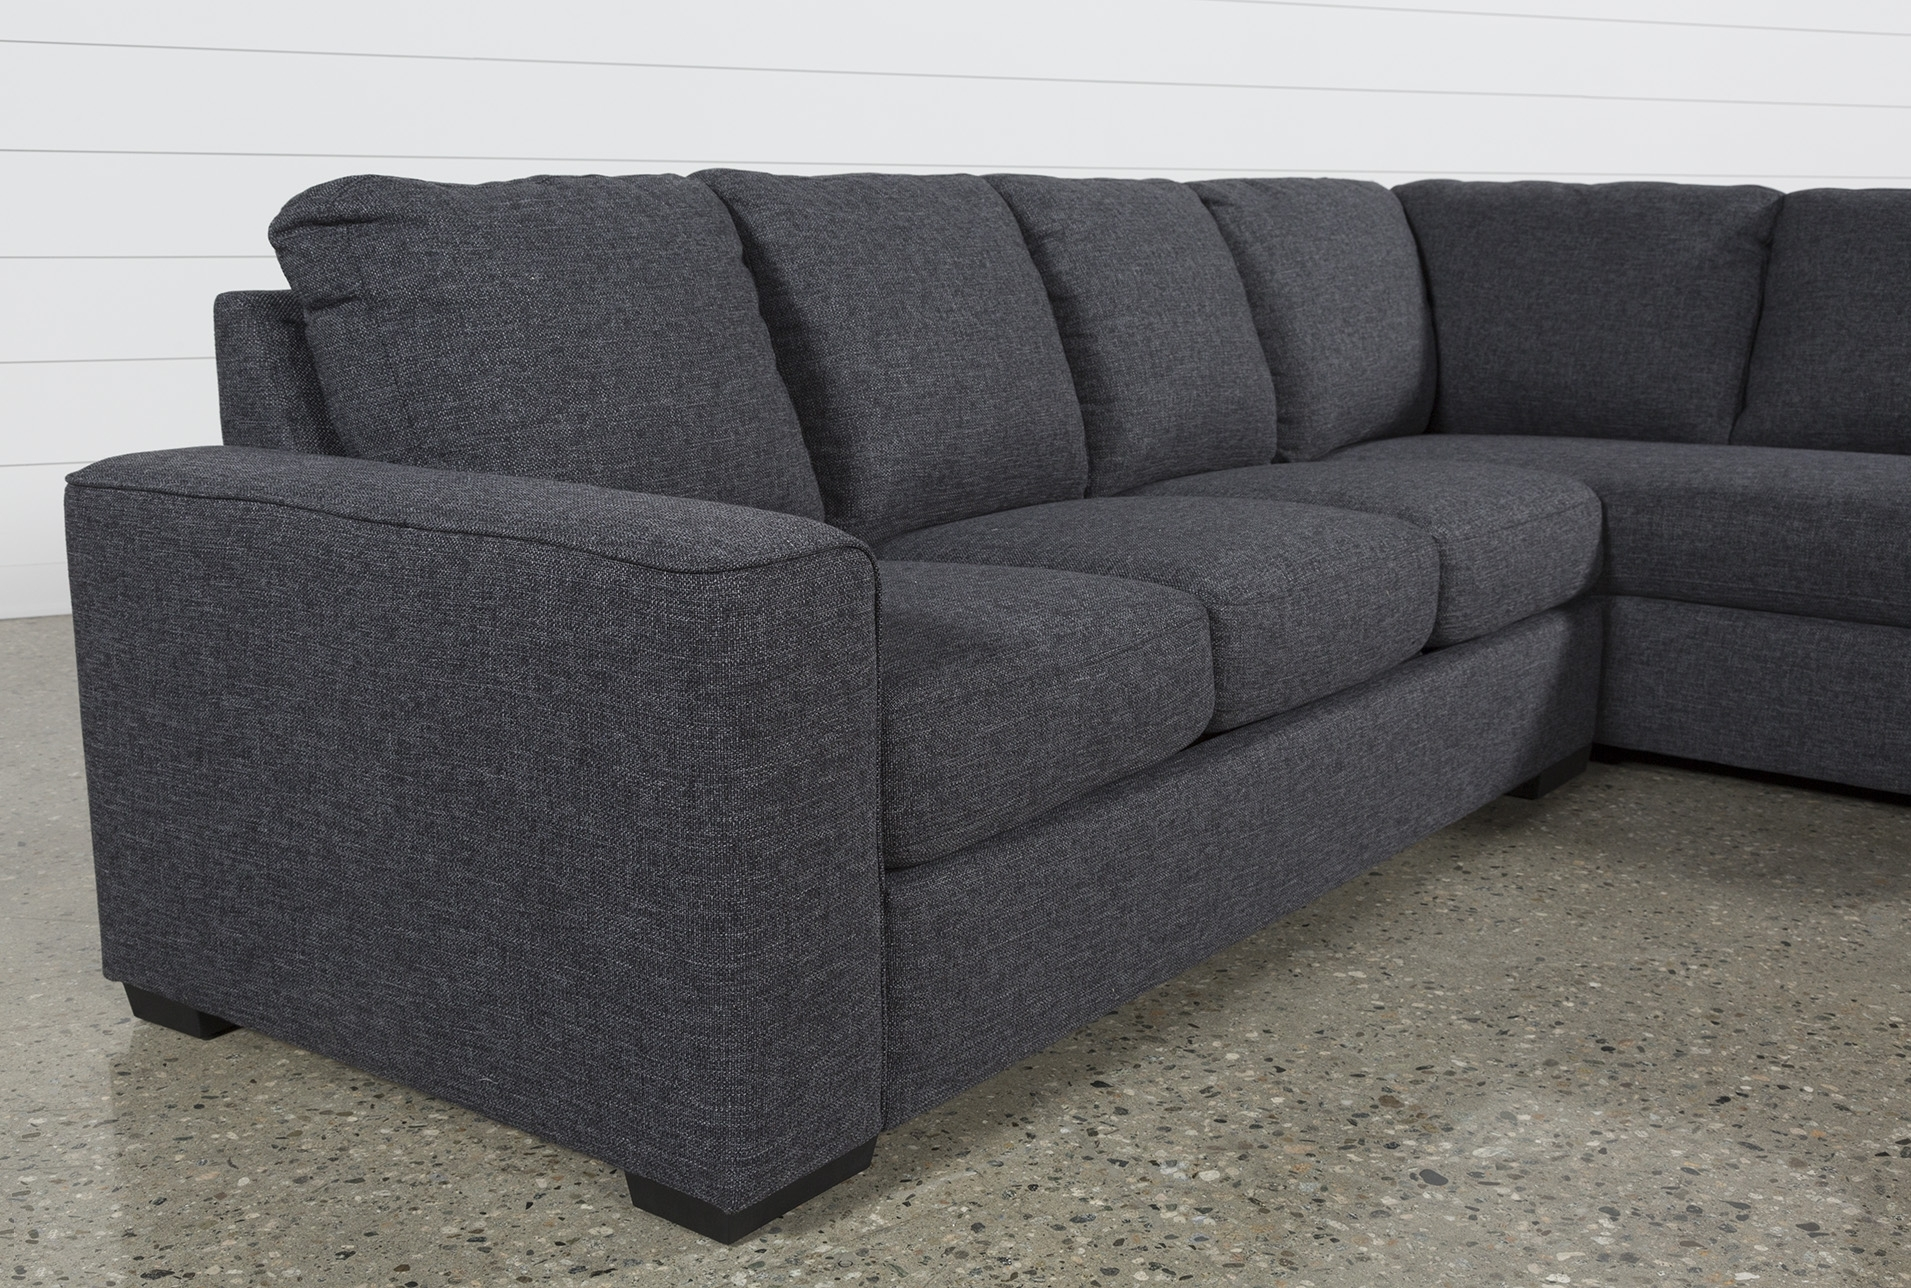 Lucy Dark Grey 2 Piece Sectional W/raf Chaise | Pinterest | Dark With Regard To Lucy Grey 2 Piece Sectionals With Raf Chaise (Image 12 of 25)